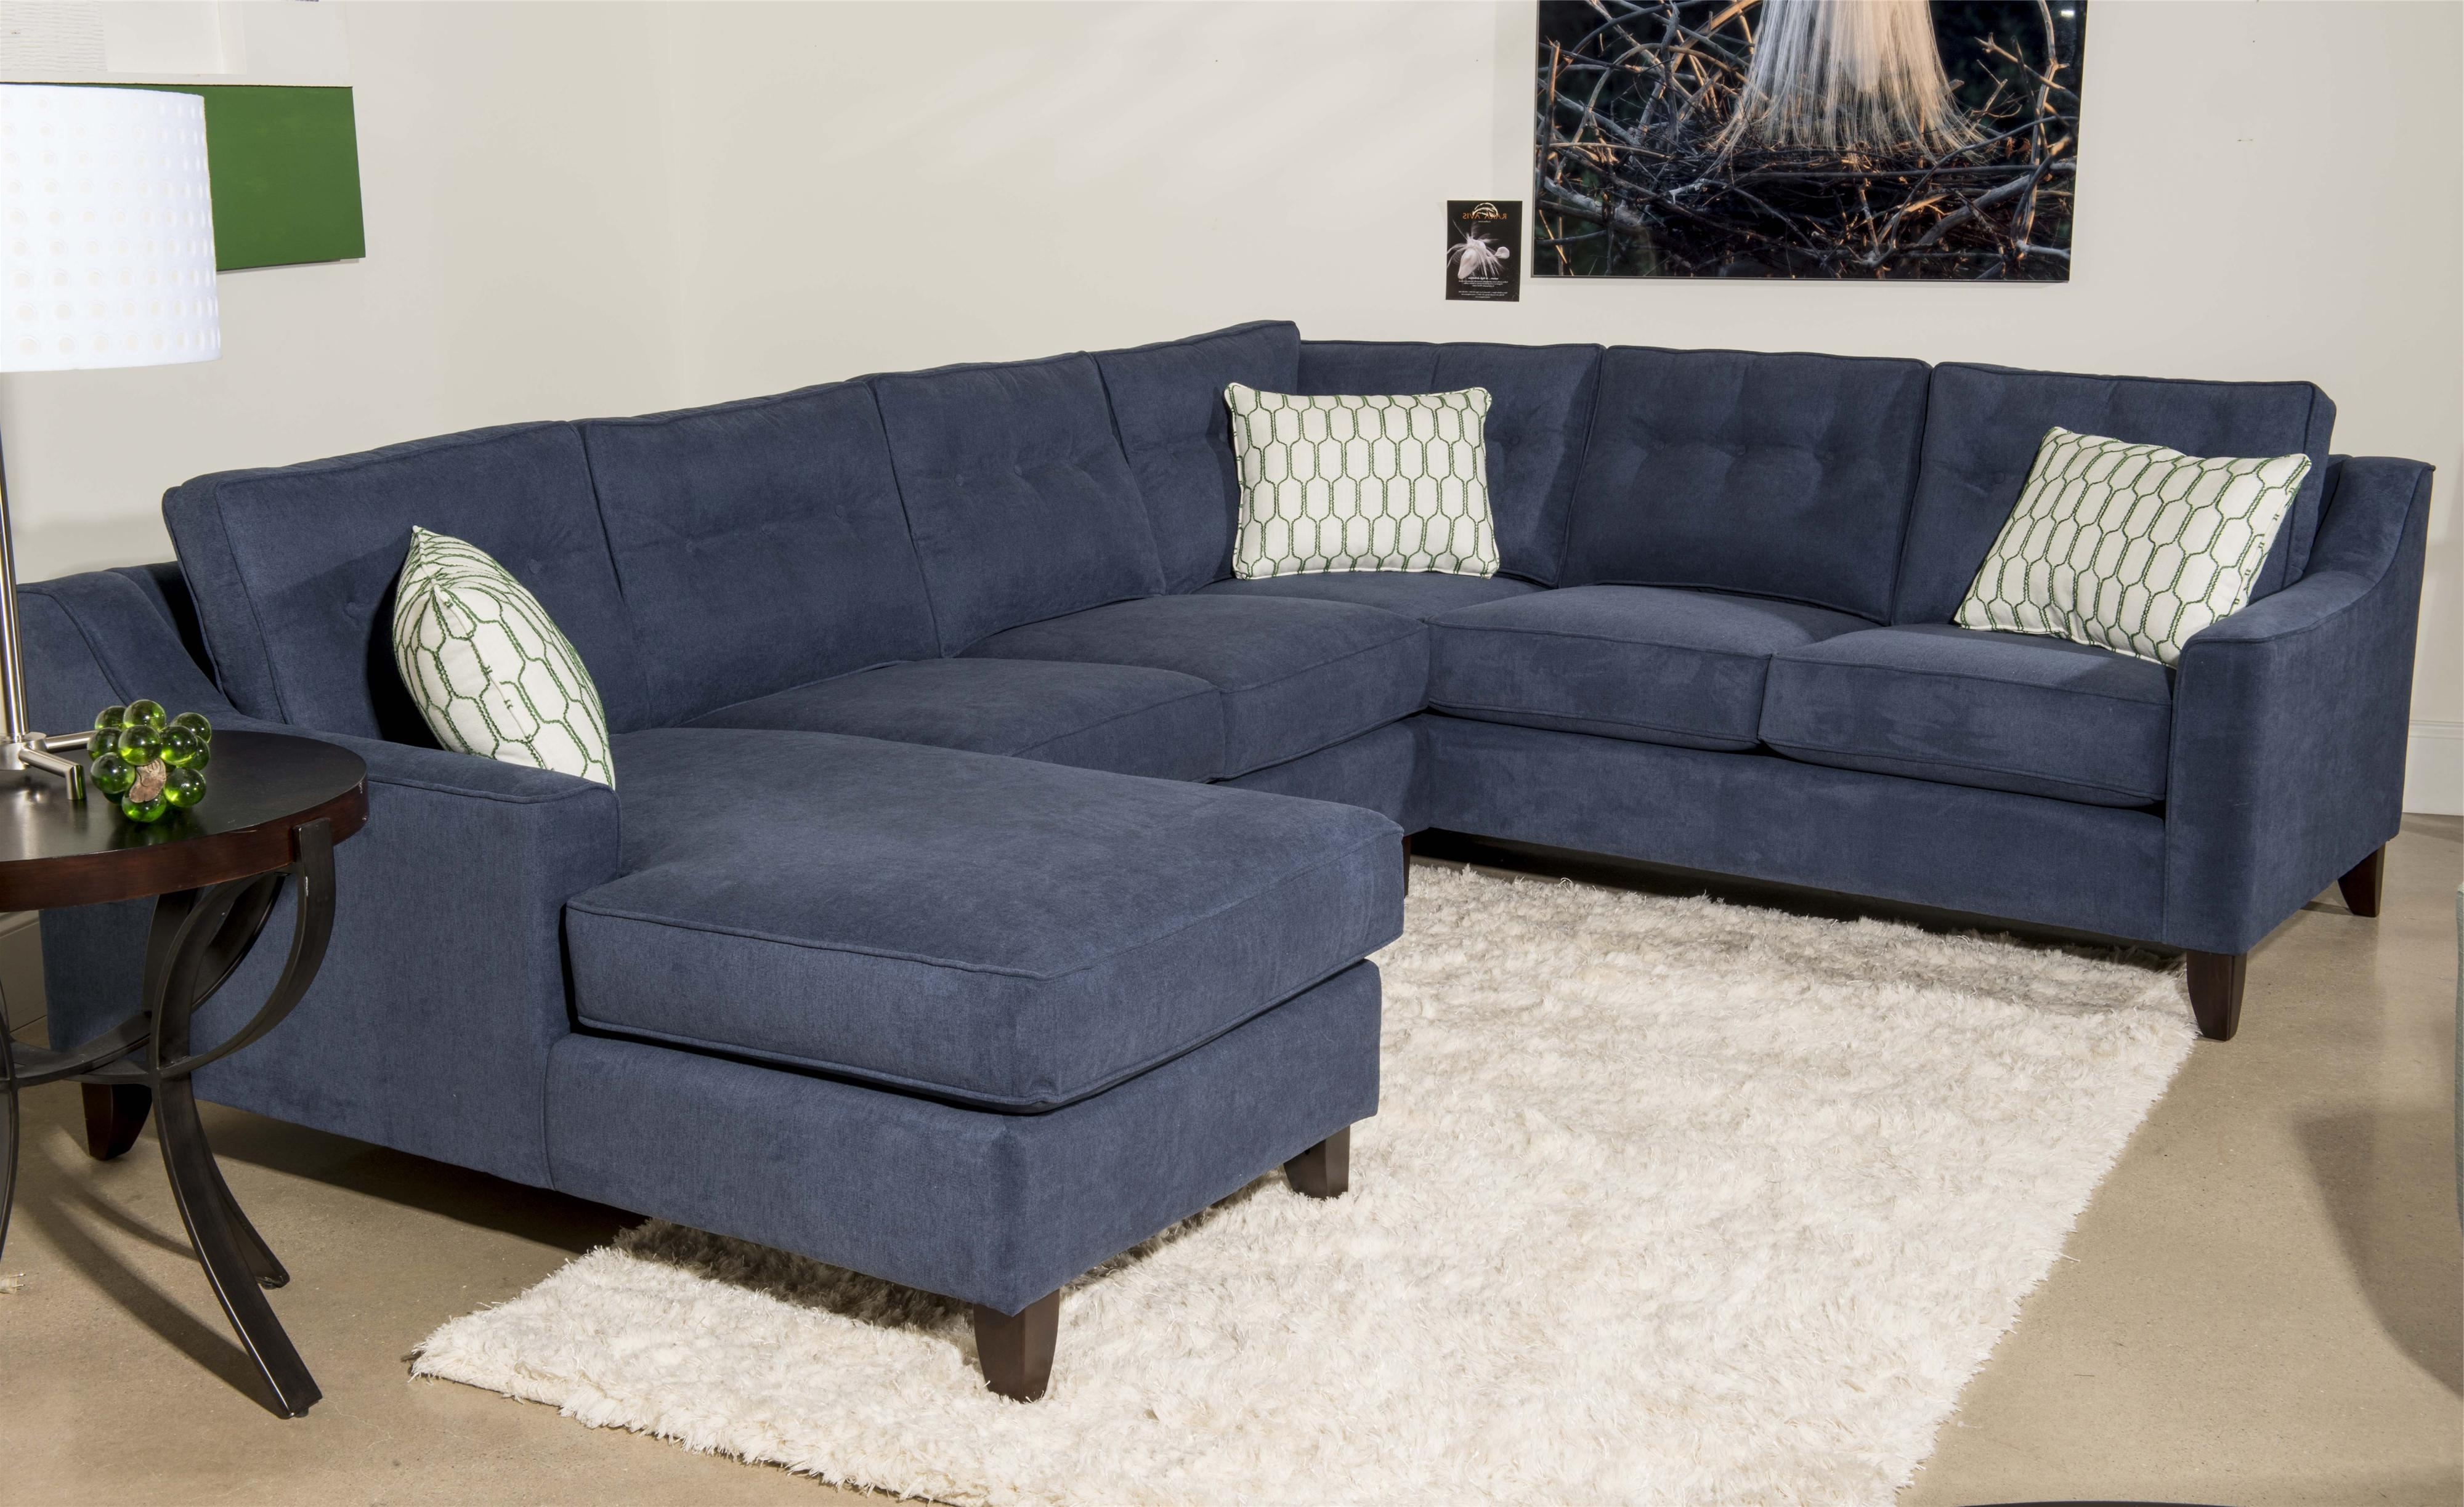 Klaussner Audrina Contemporary 3 Piece Sectional Sofa With Chaise Inside Most Recently Released Sectional Chaise Sofas (Gallery 7 of 15)